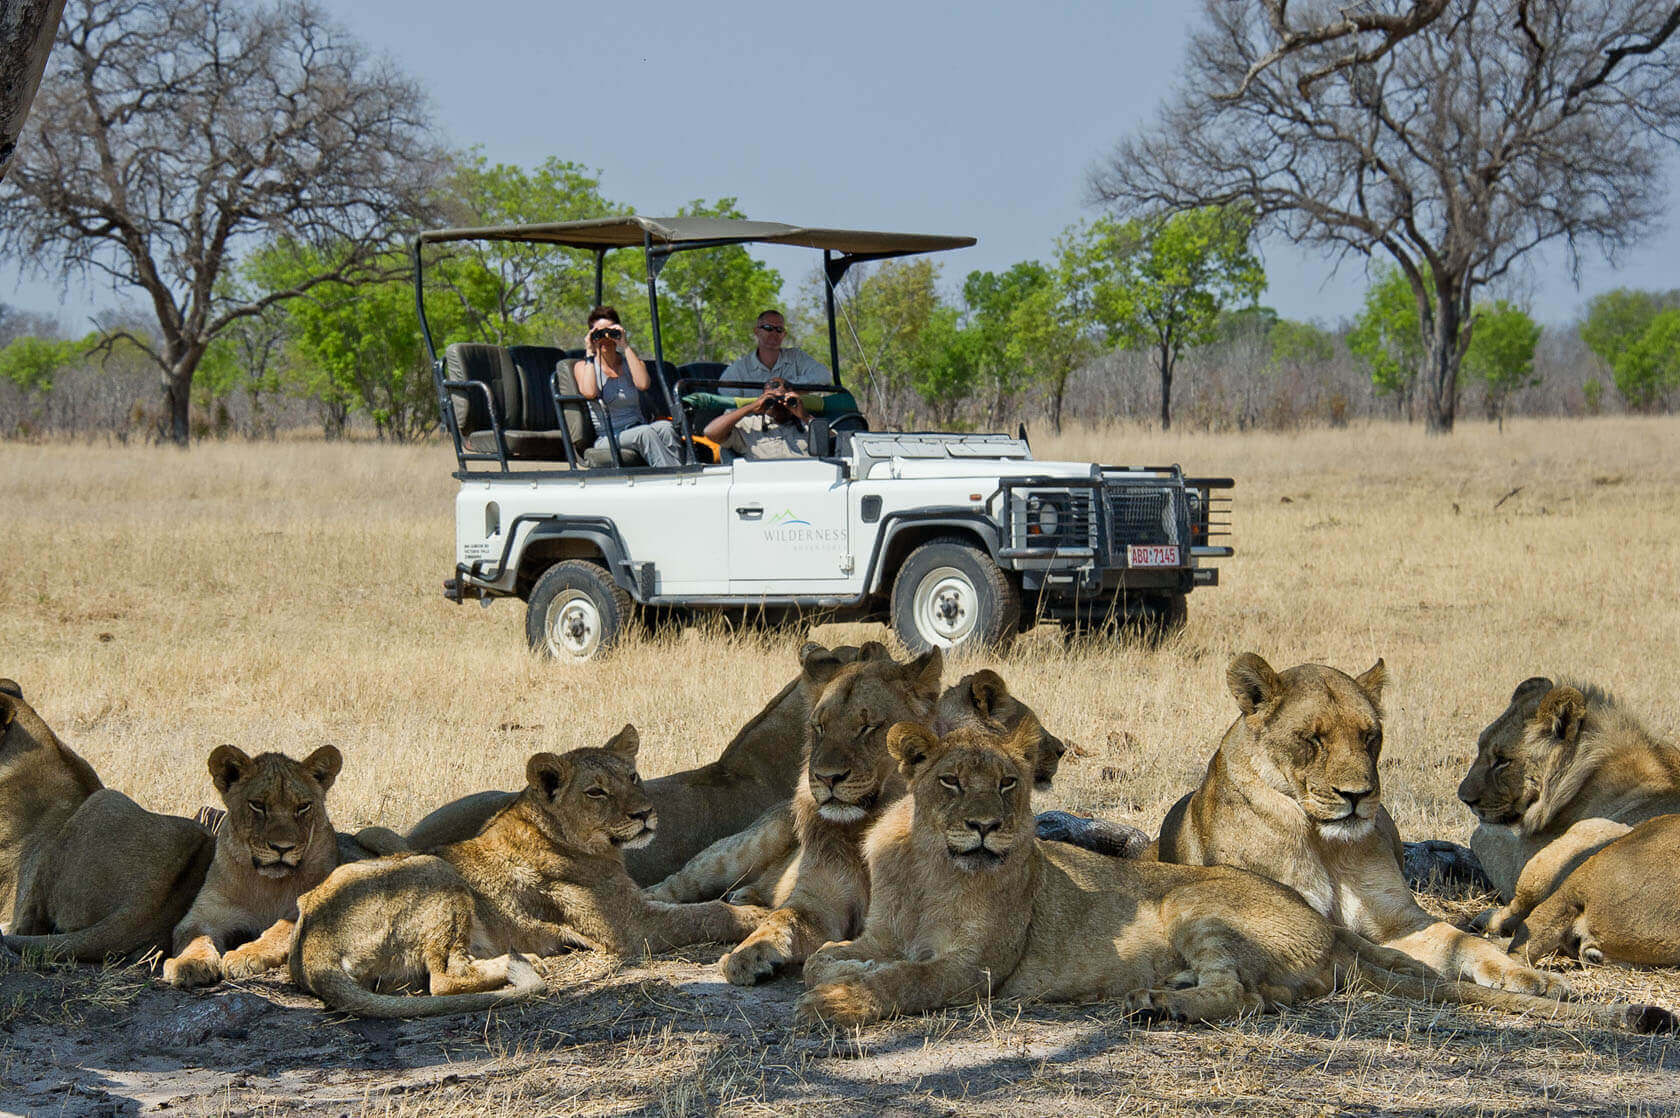 What you should look for when choosing your luxury safari accommodation